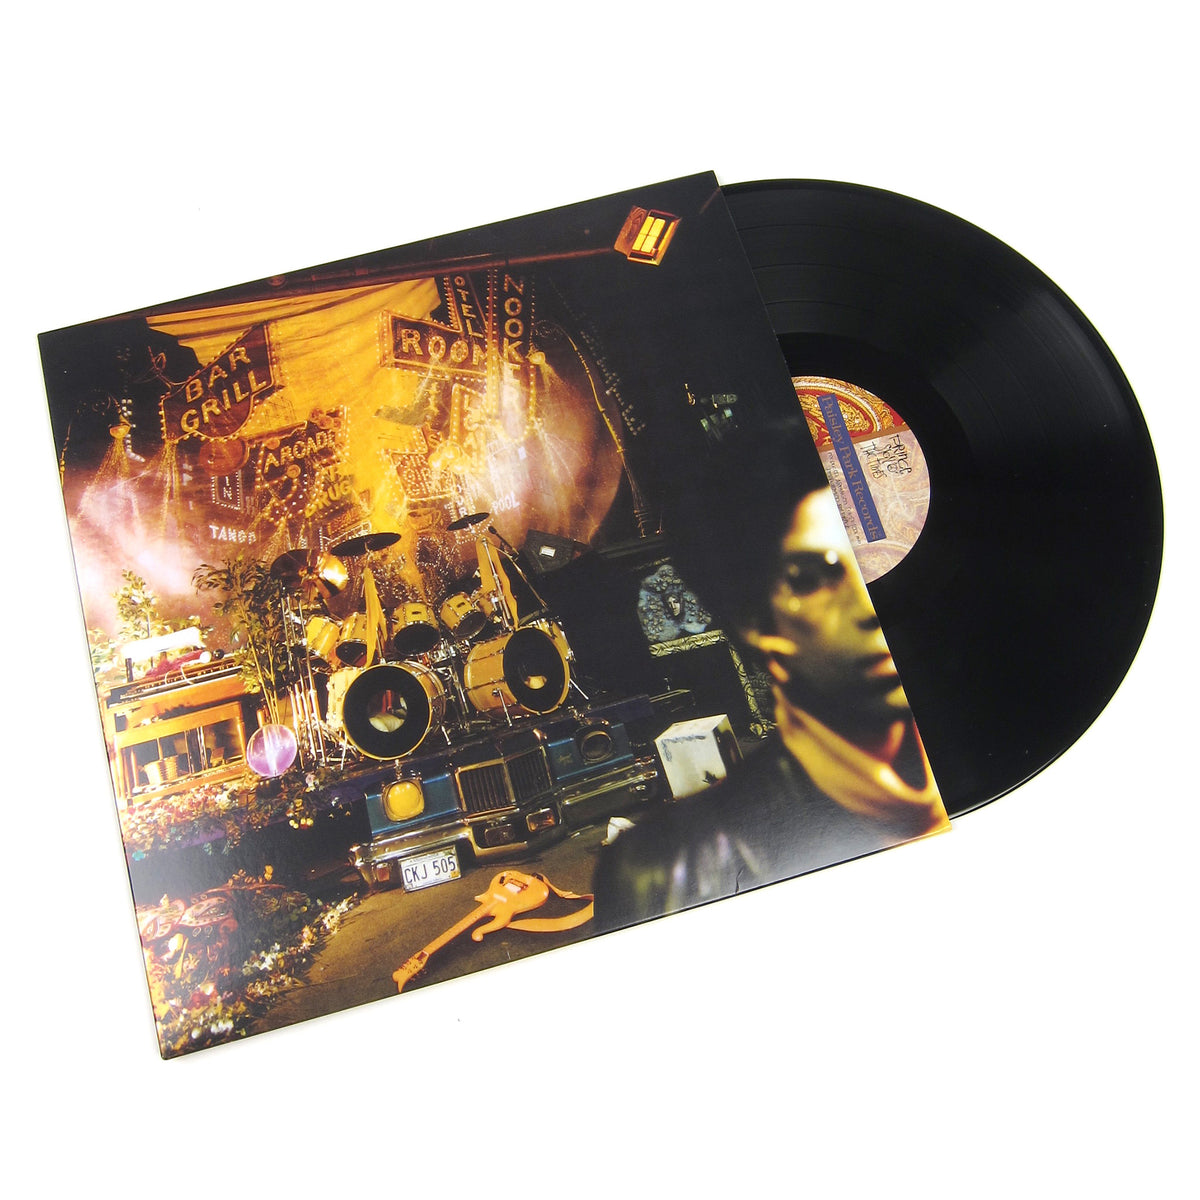 Prince: Sign 'O' The Times Vinyl 2LP